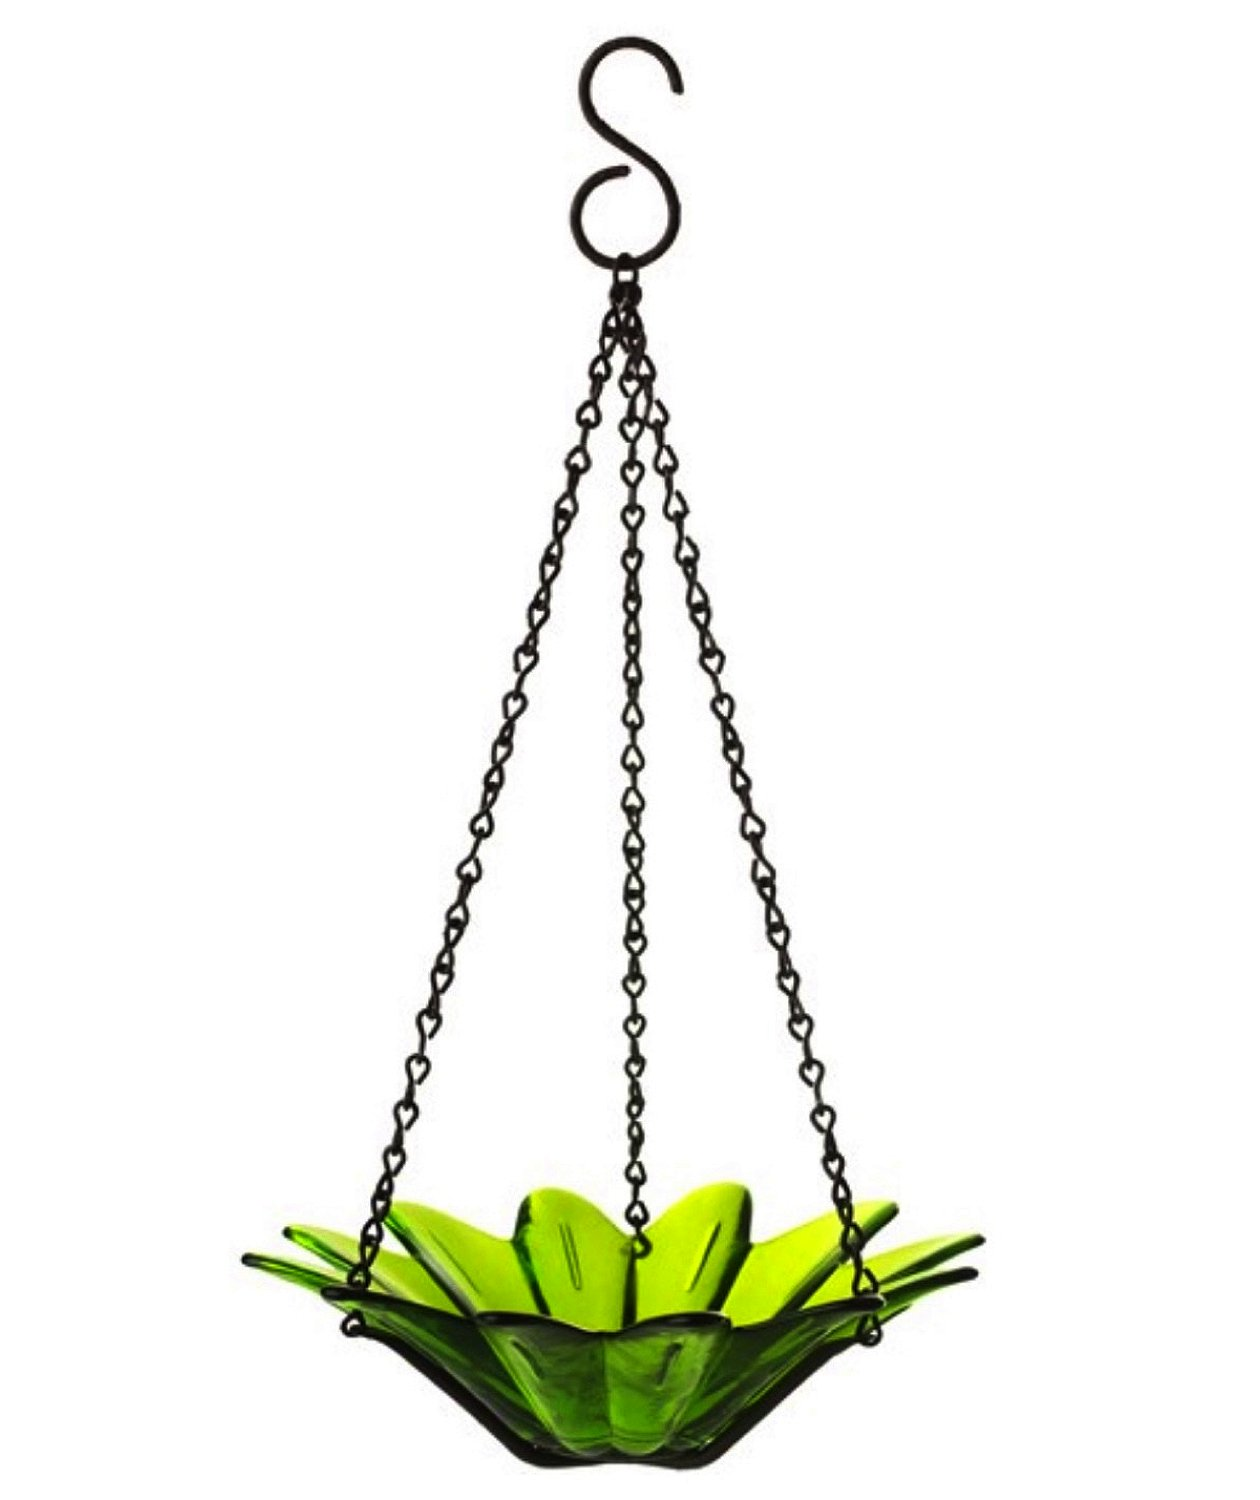 Hanging Colored Glass Bowl Bird Feeder Garden Home Accent 1pc G96 Green Recycled Eco-Friendly Colored Glass Bowl with Black Powder Coated Chain for Garden, Kitchen and/or Home Decor.